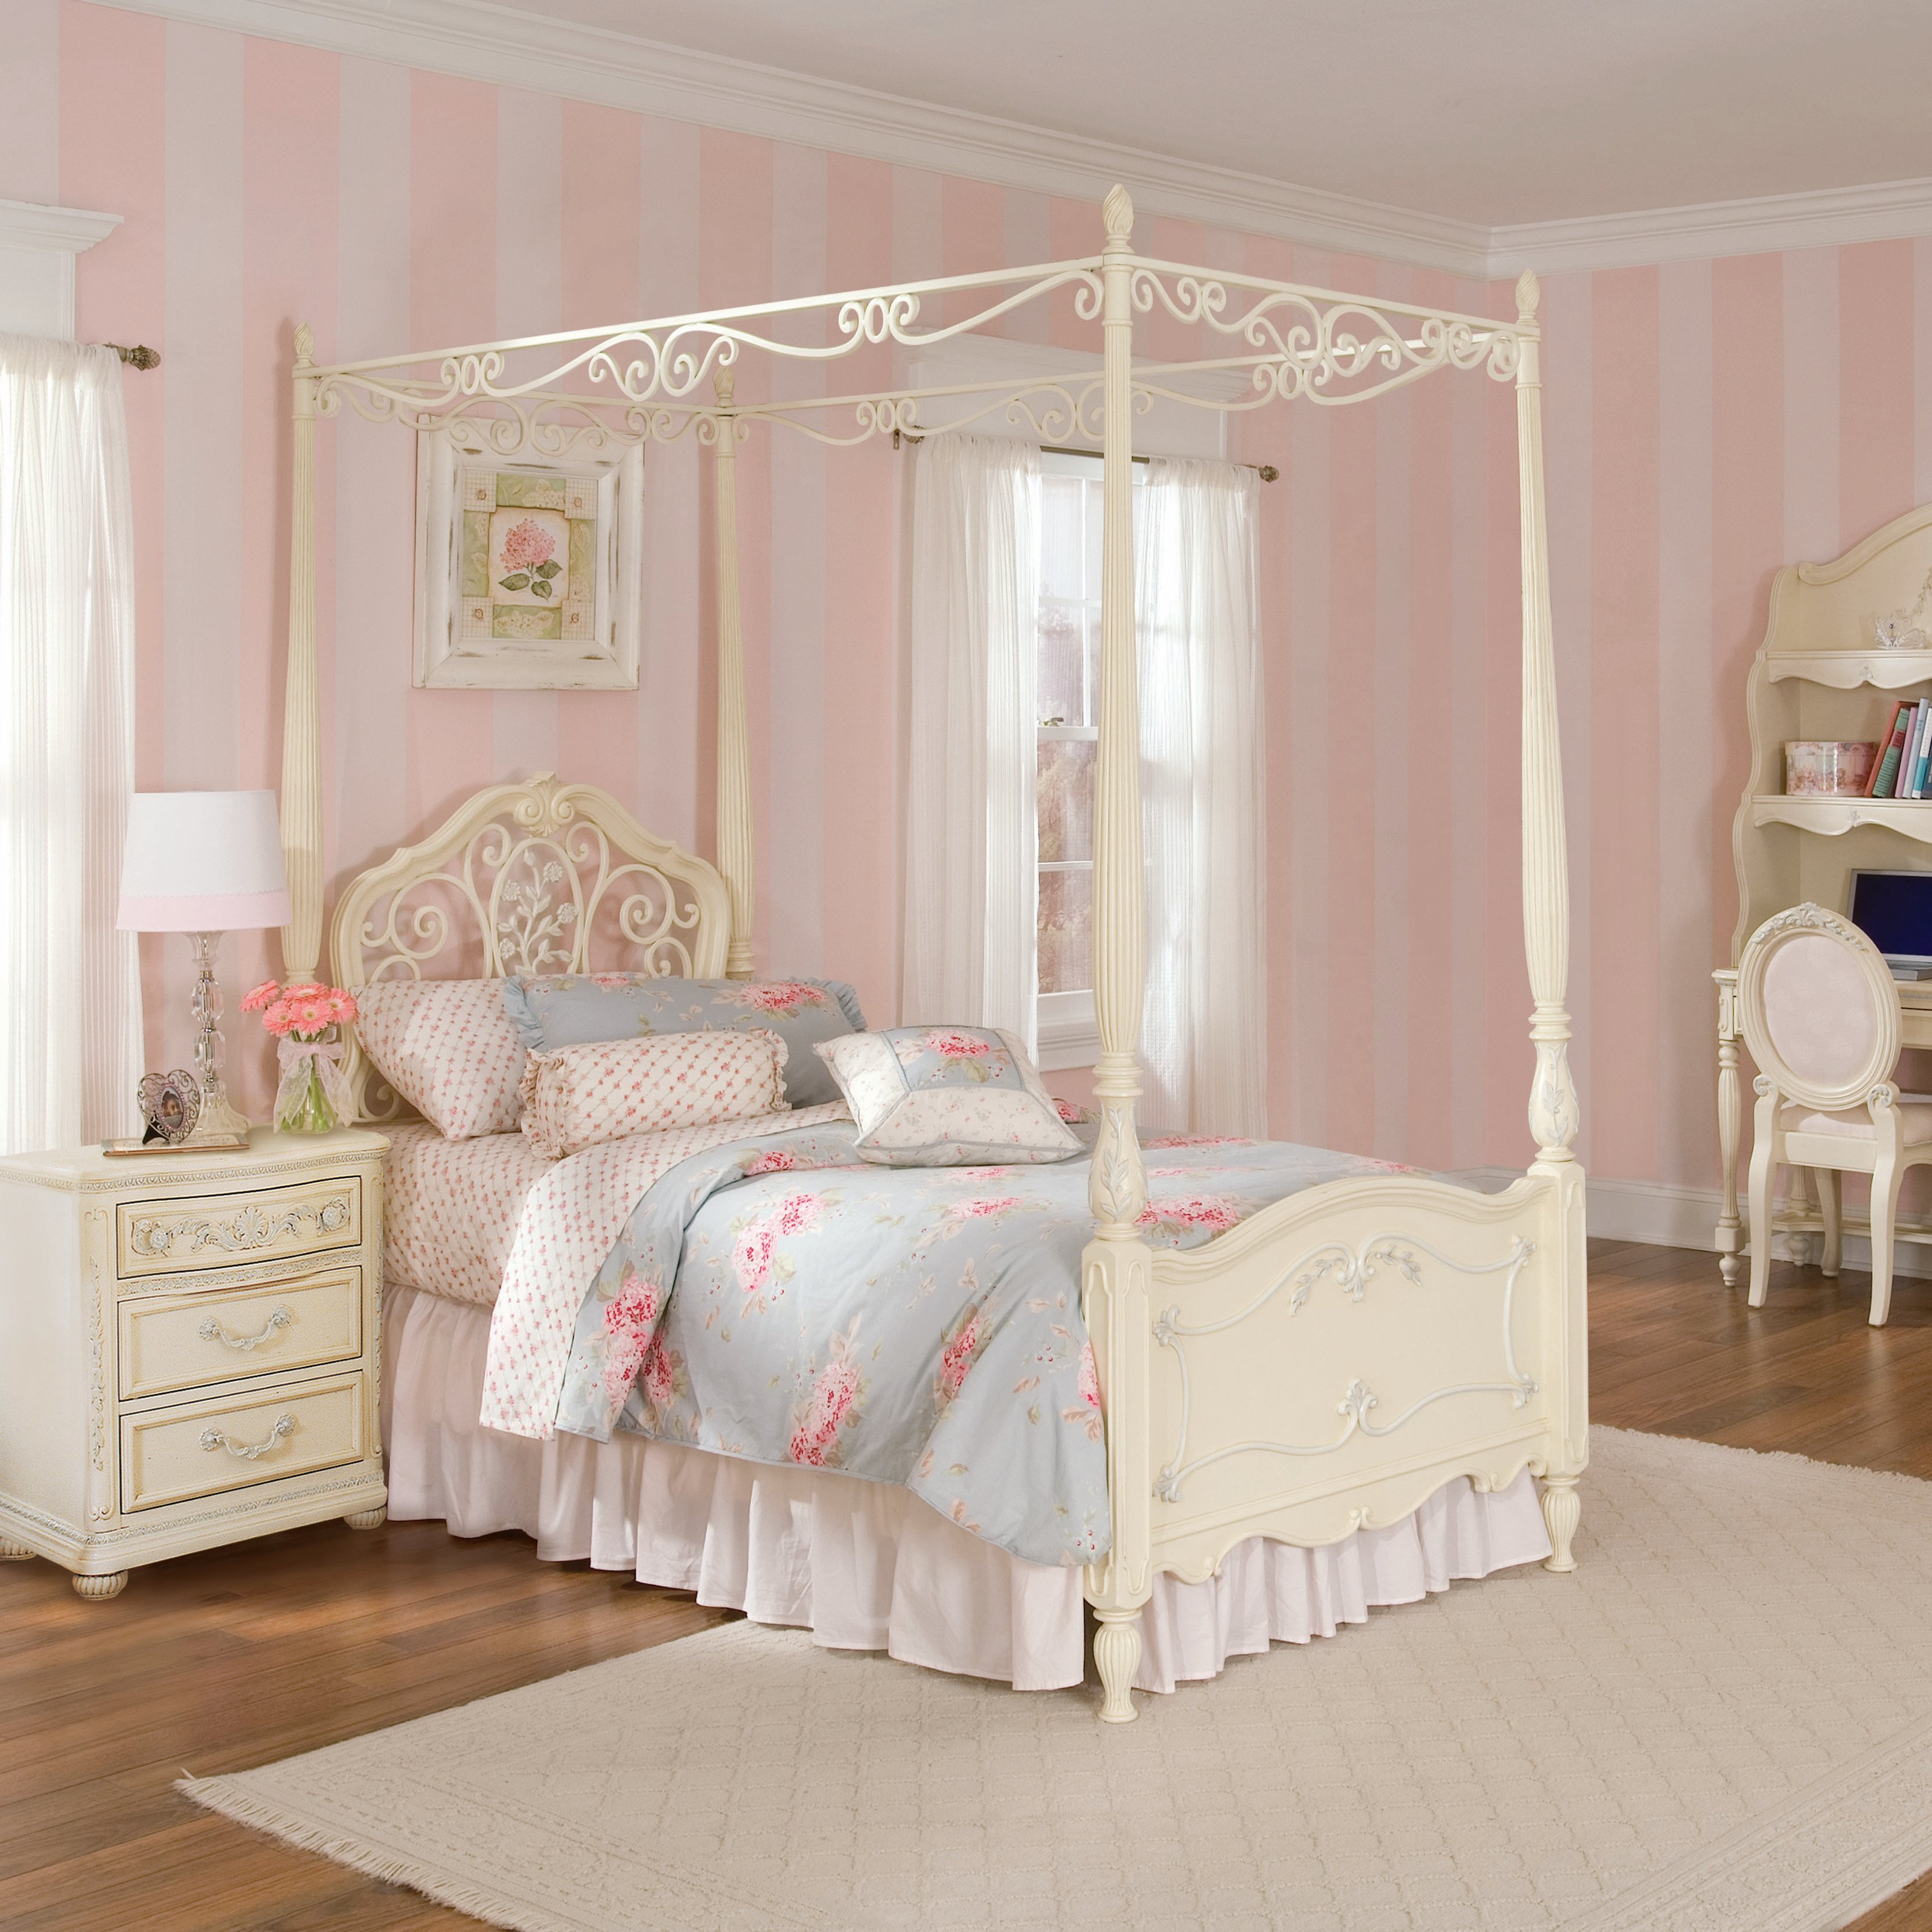 Bed Designs For Girl 32 Dreamy Bedroom Designs For Your Little Princess